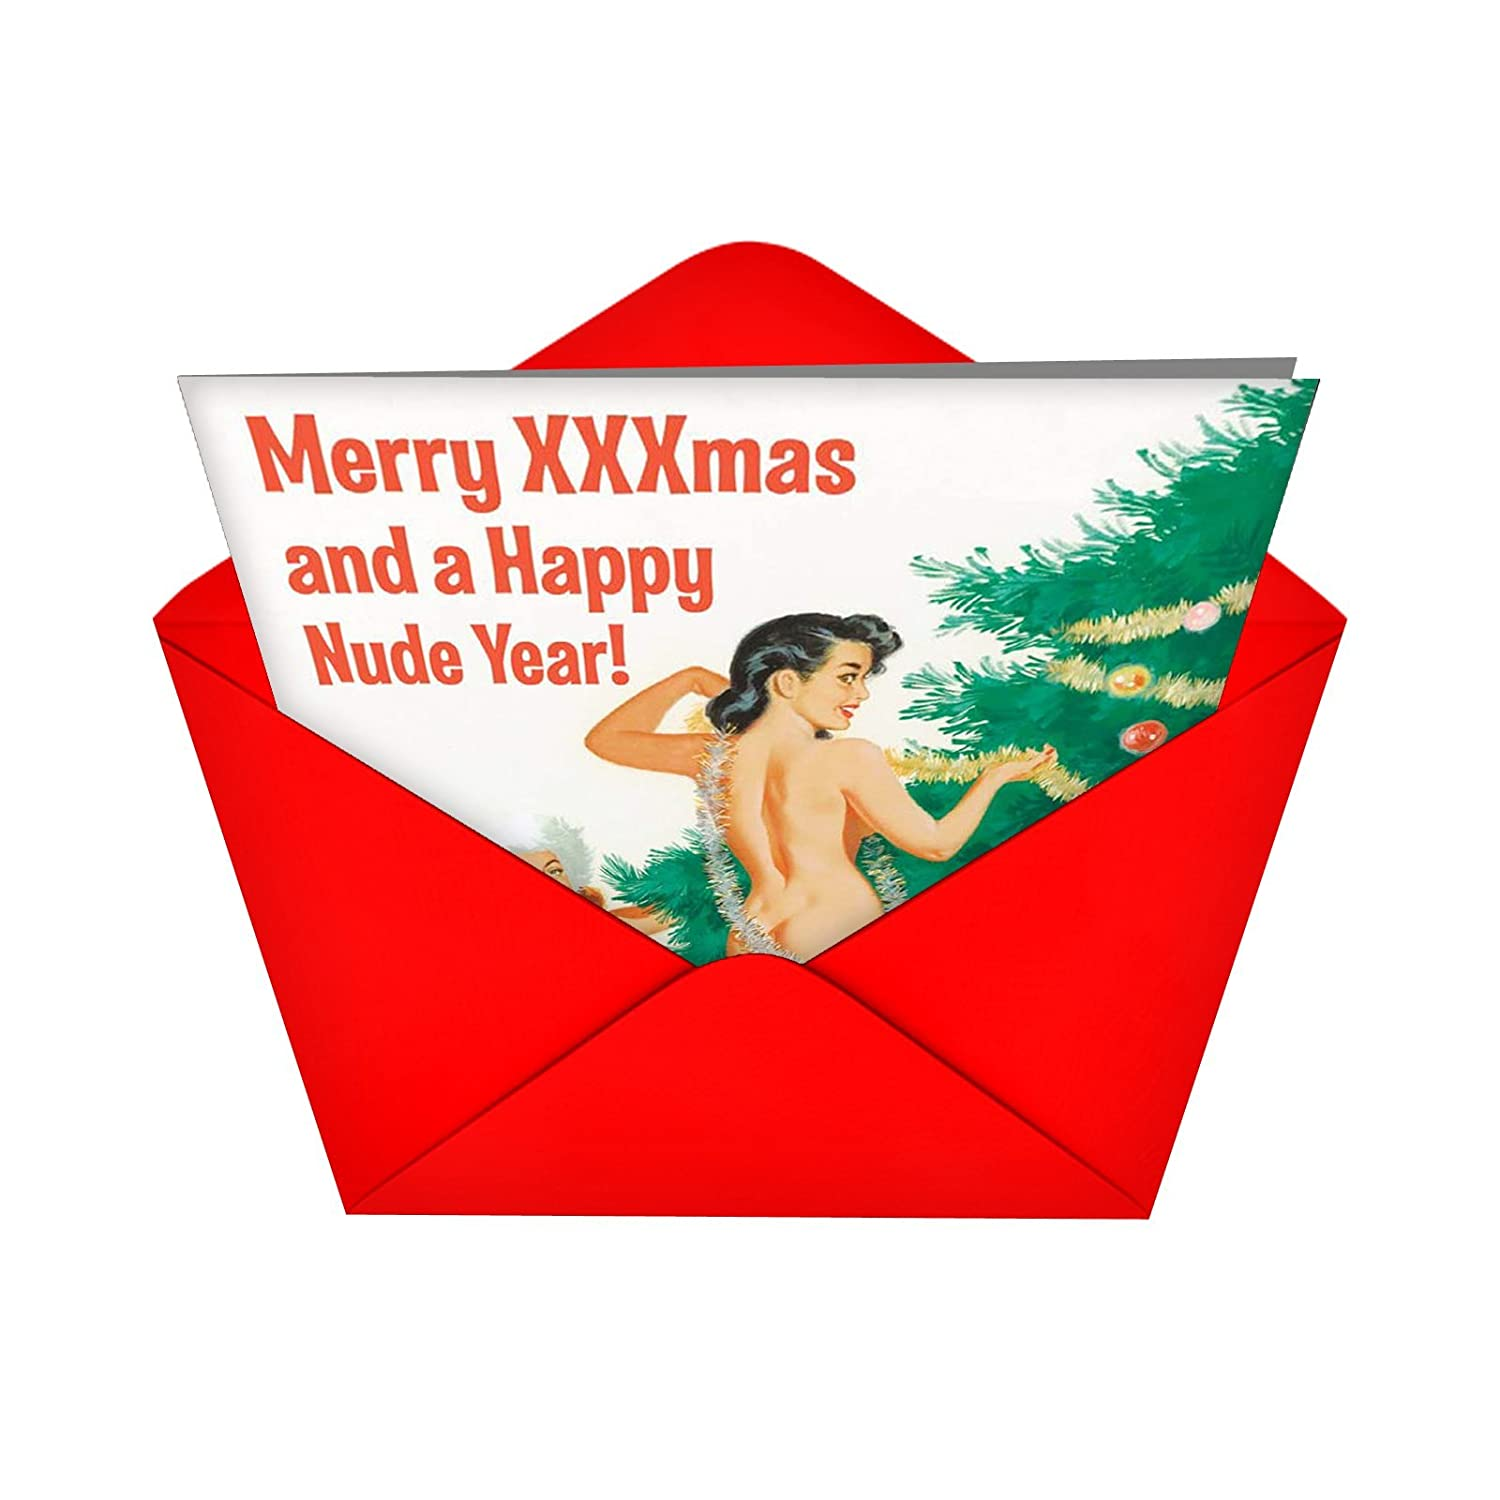 Amazon 1905 happy nude year funny new year greeting card amazon 1905 happy nude year funny new year greeting card with 5 x 7 envelope by nobleworks office products kristyandbryce Images